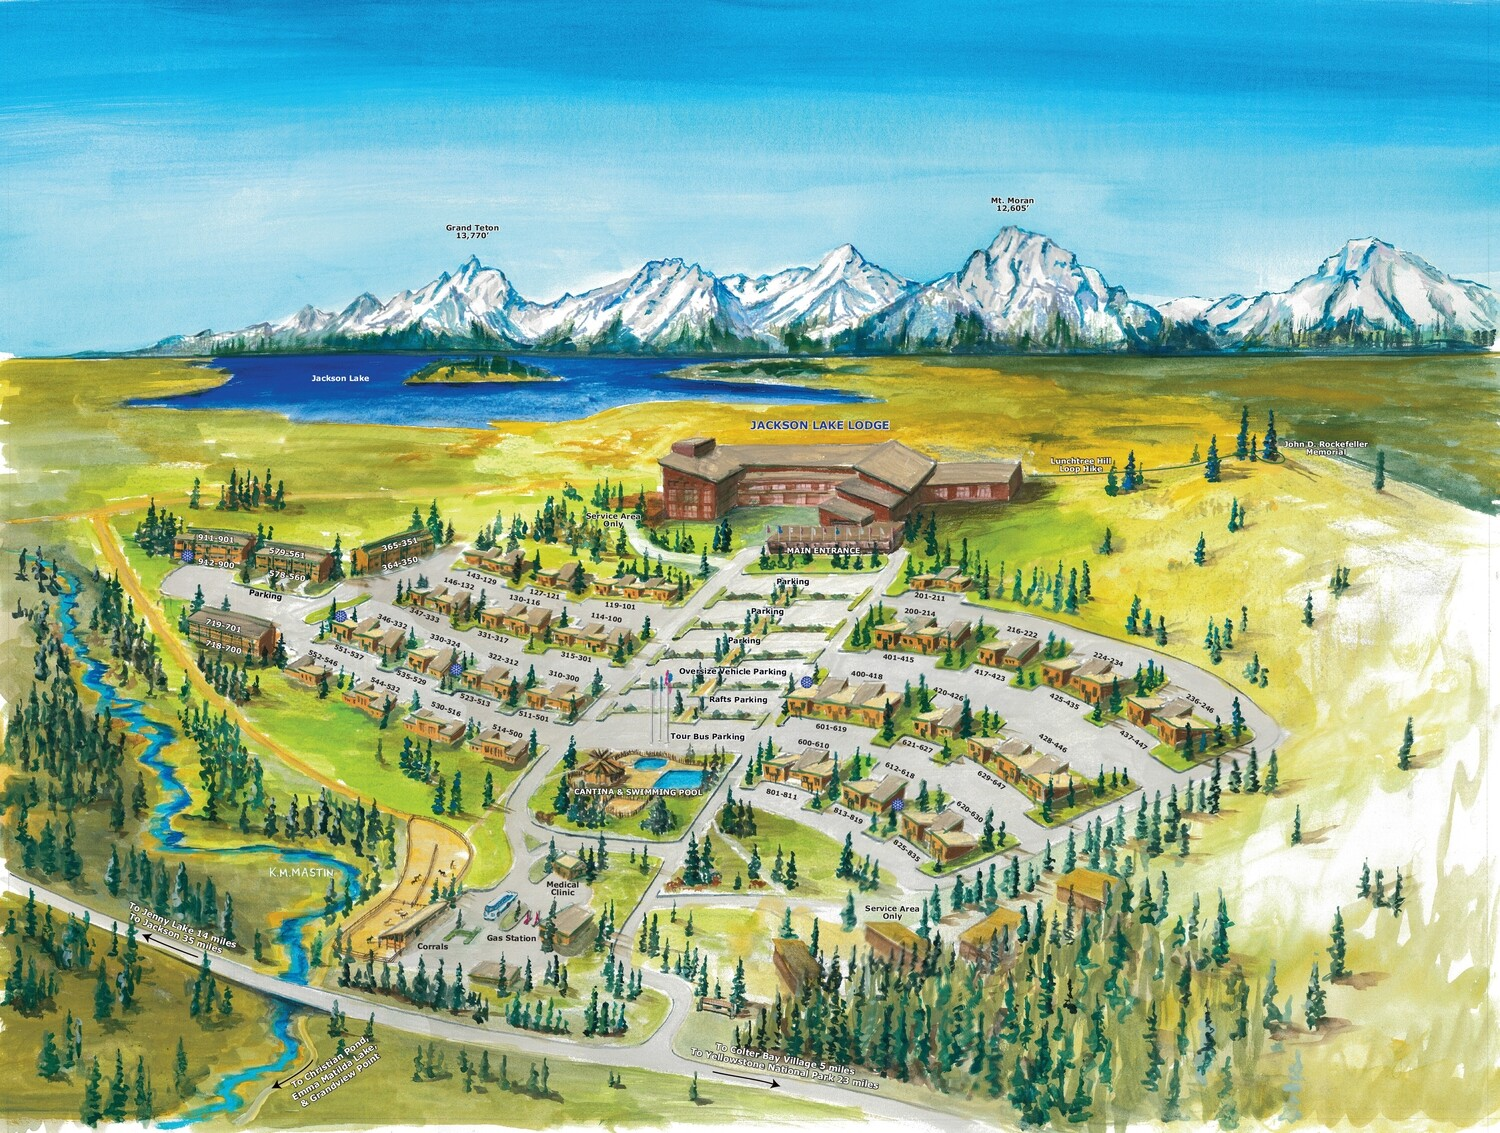 A map of the lodge complex.